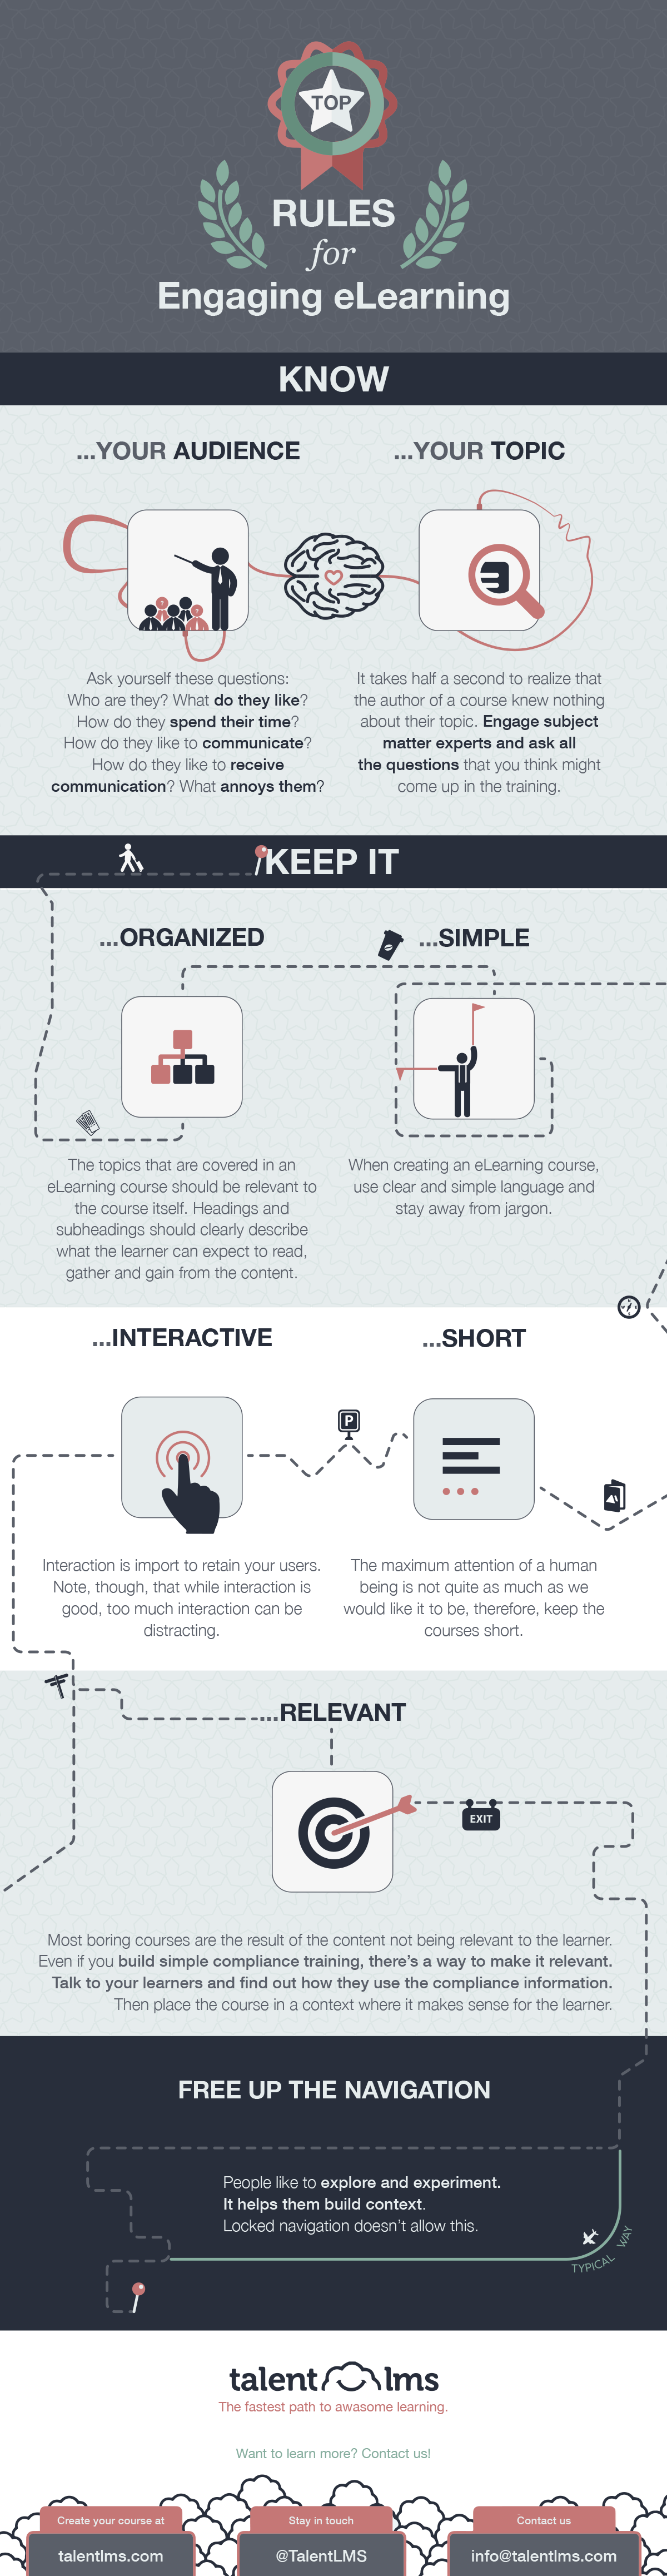 eLearning infografic: the rules of engaging